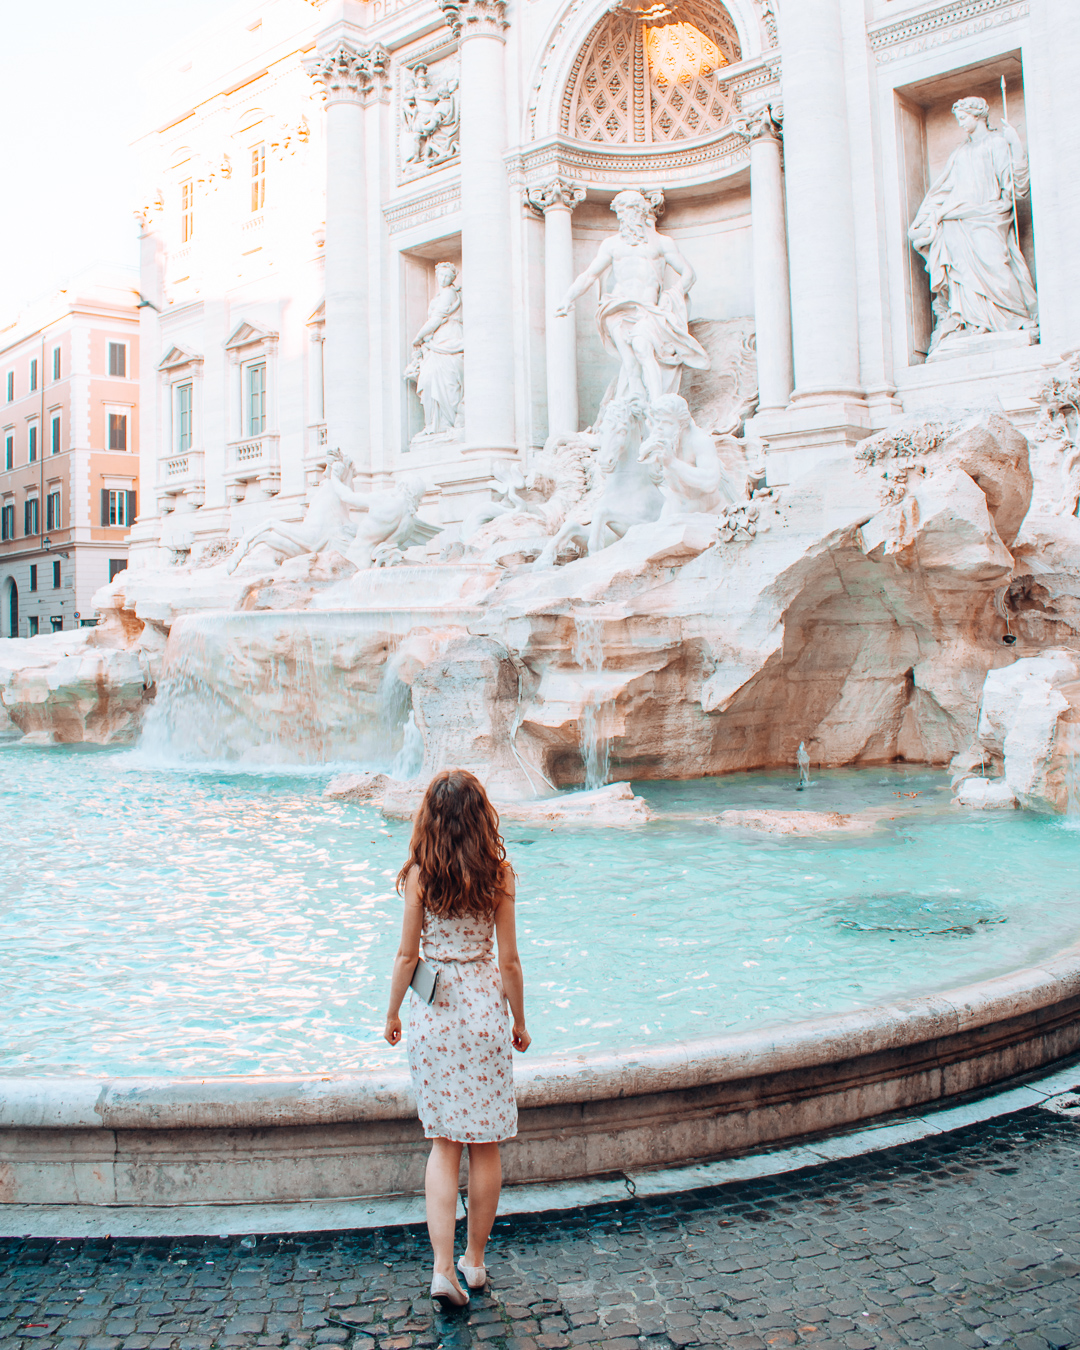 Girl walking towards the Trevi Fountain in Rome